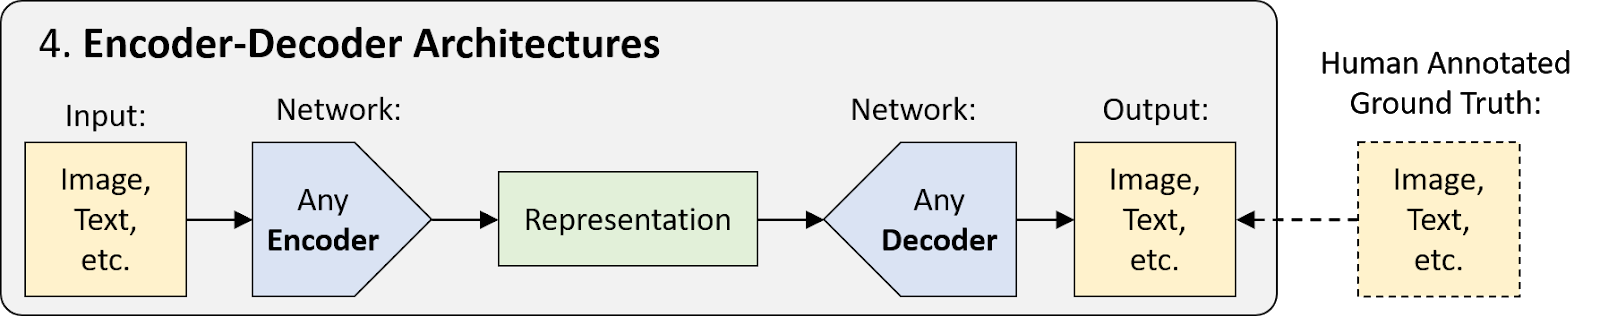 Encoder-Decoder Architectures